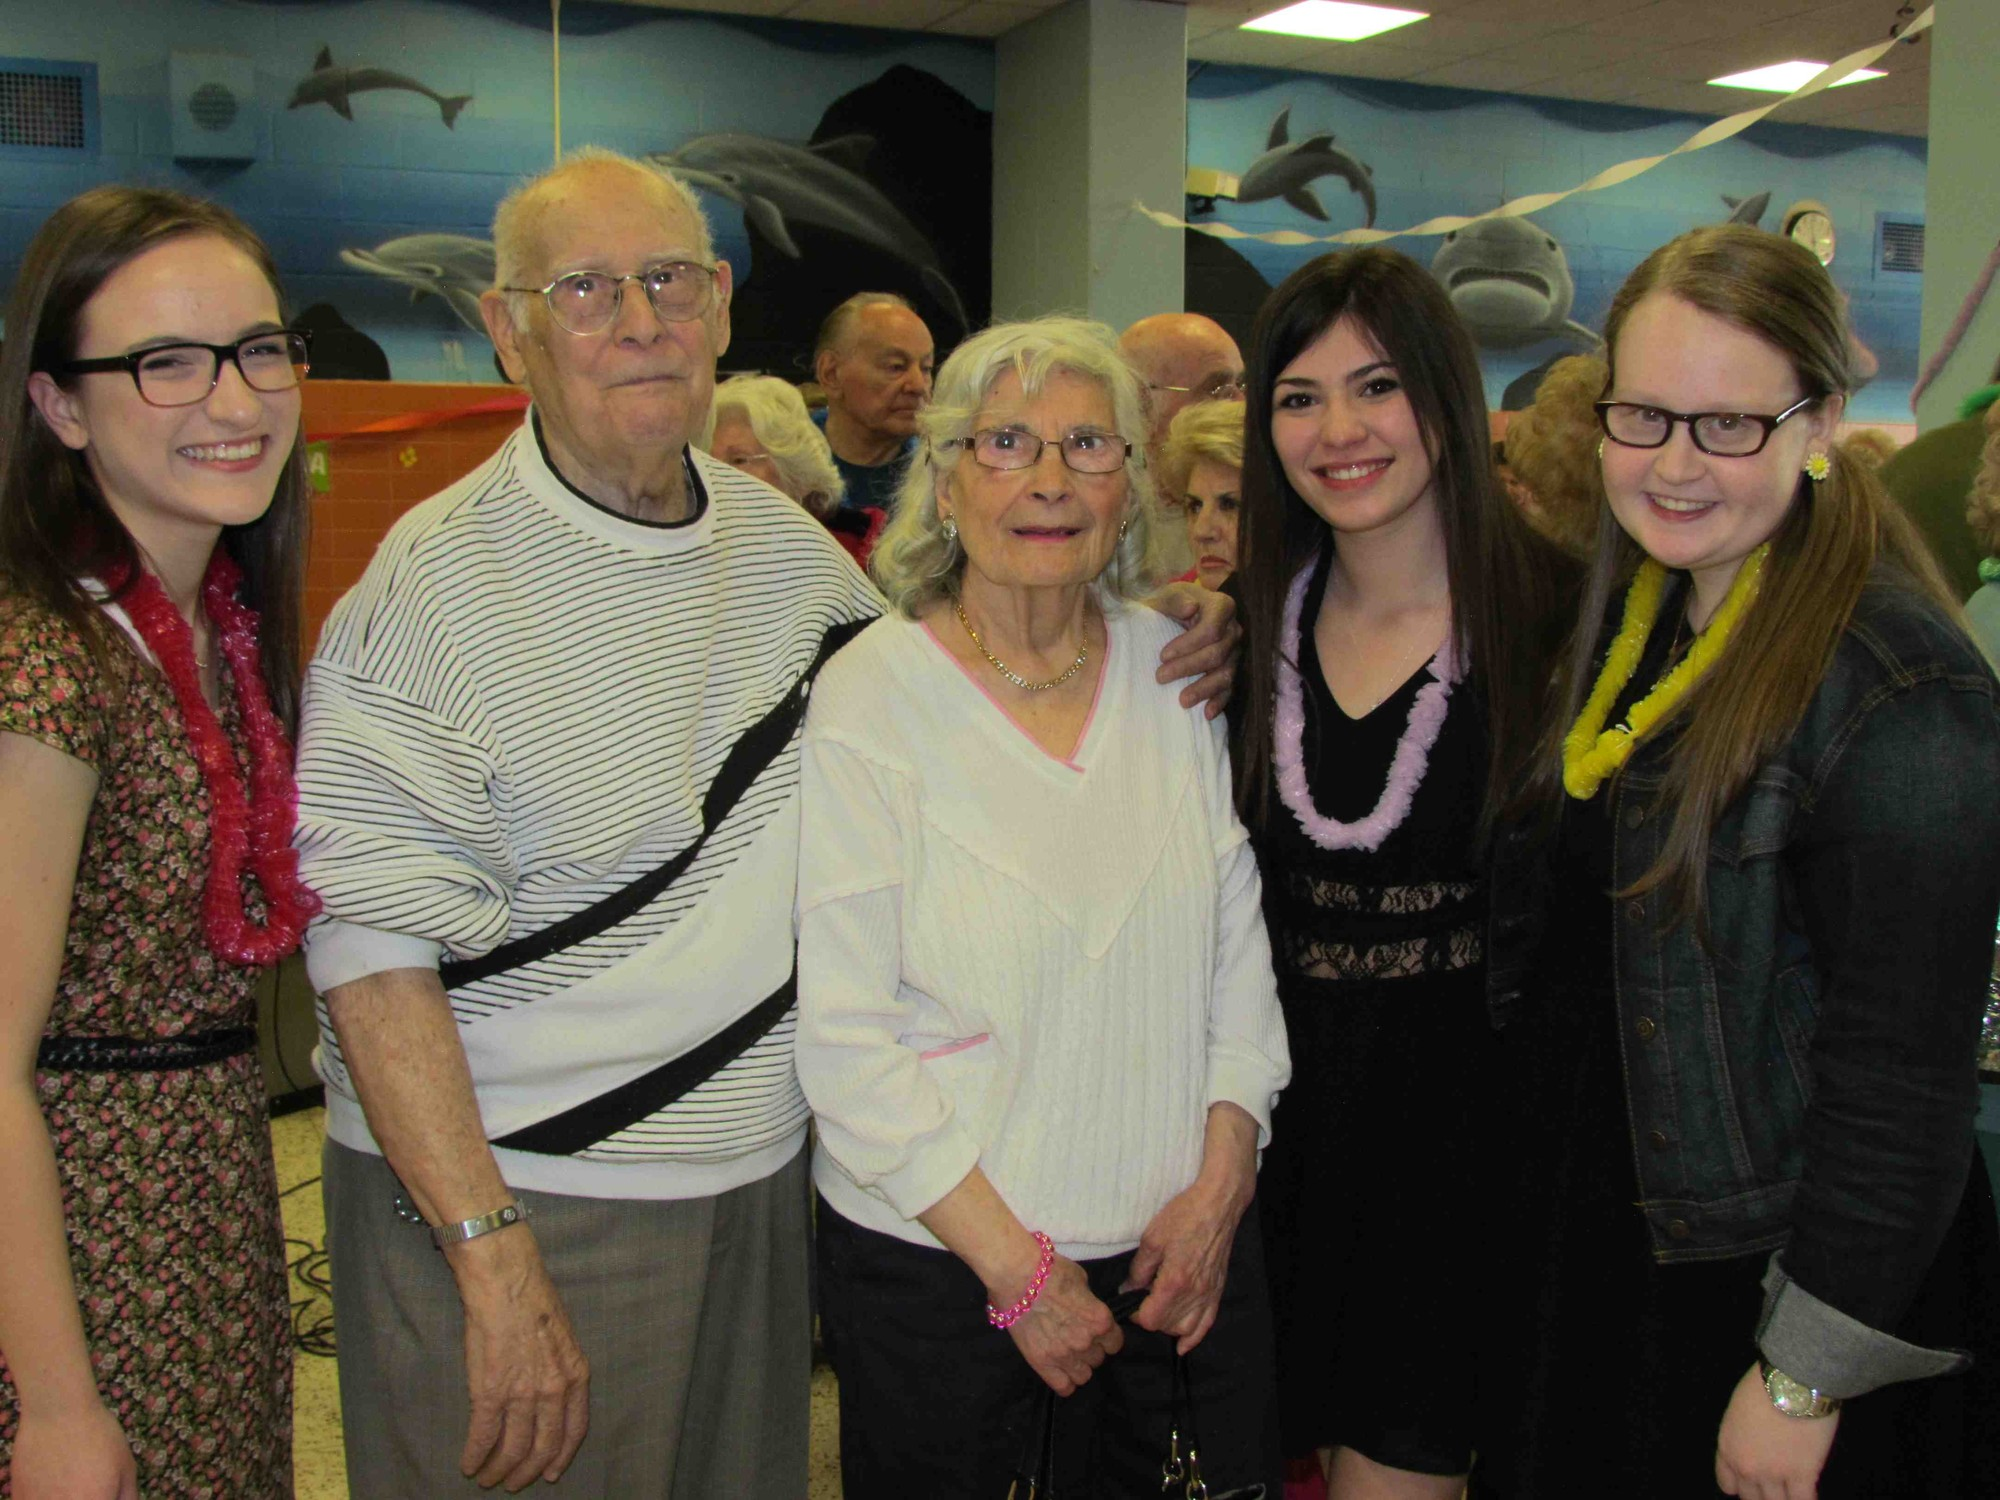 Students served food, talked to guests and entertained throughout the evening at the 14th annual senior citizens prom.